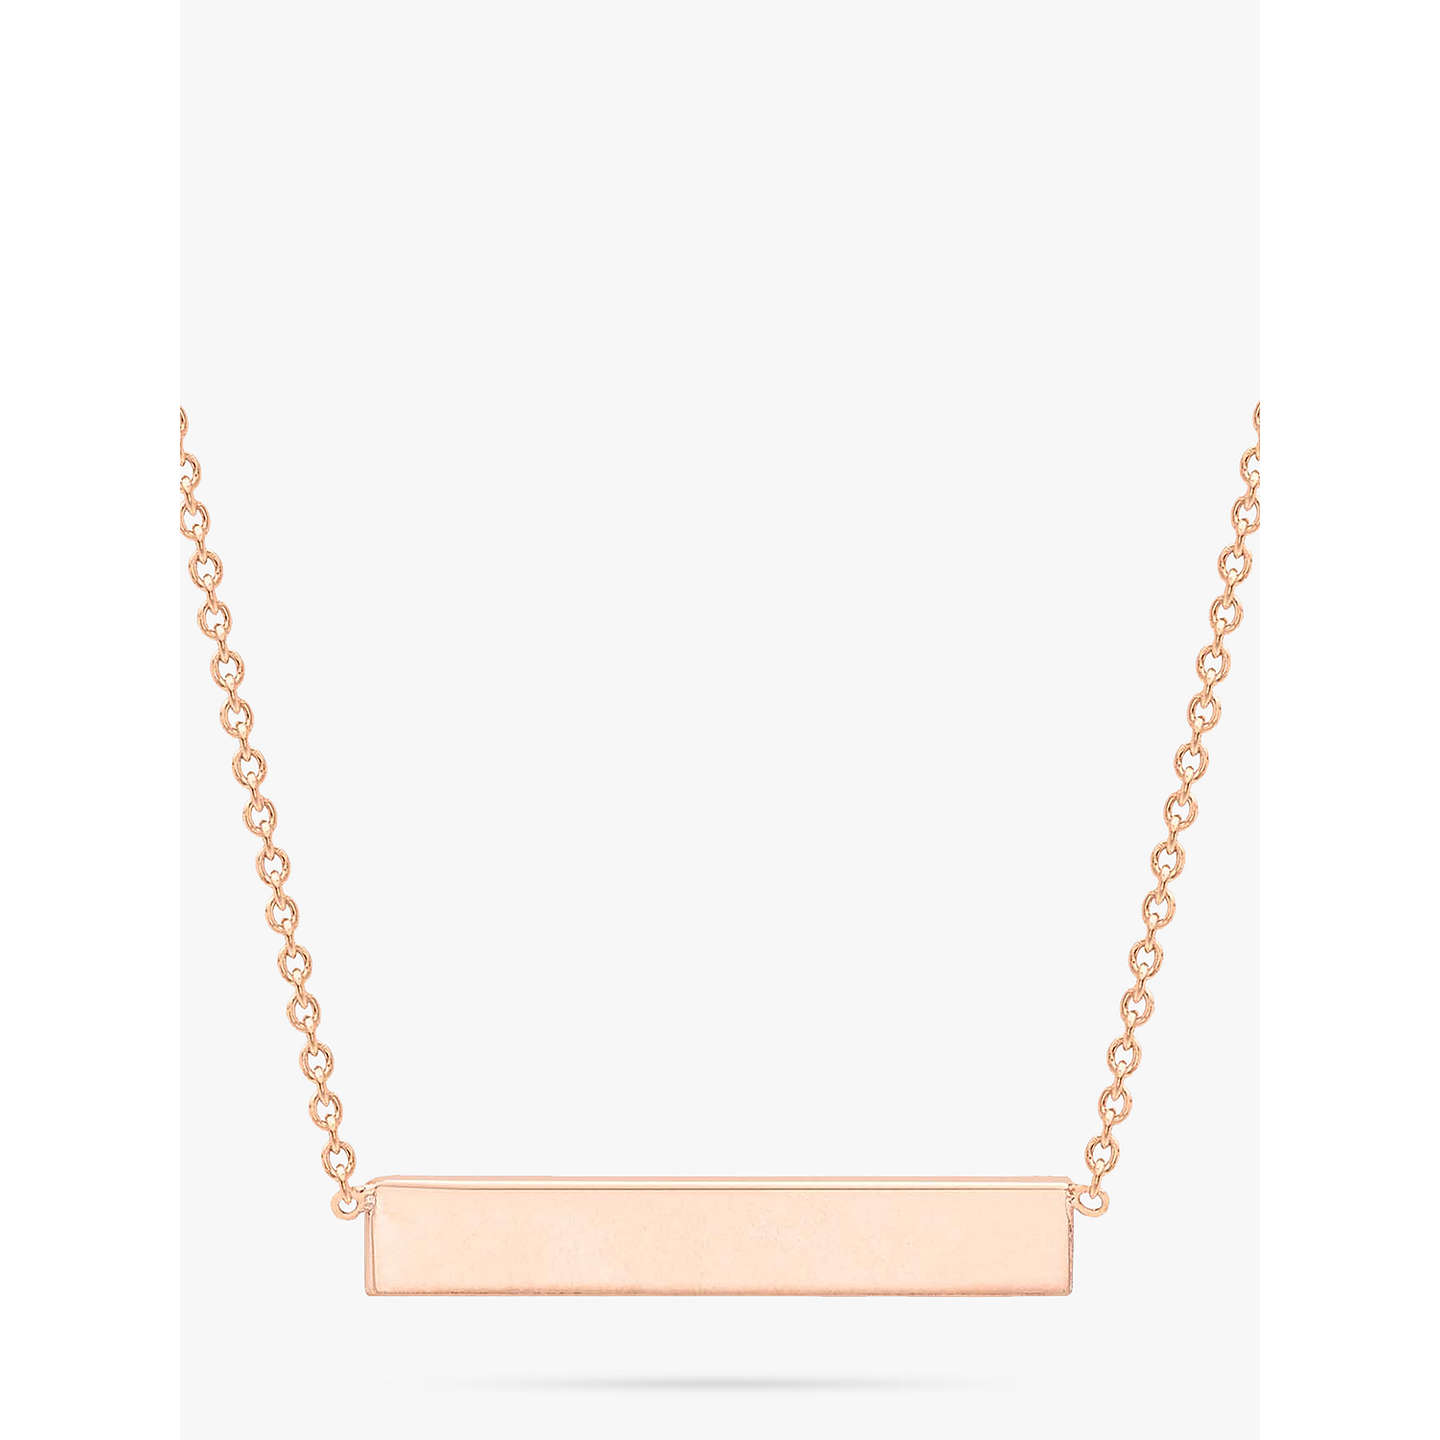 cr bar message gold horizontal necklace img